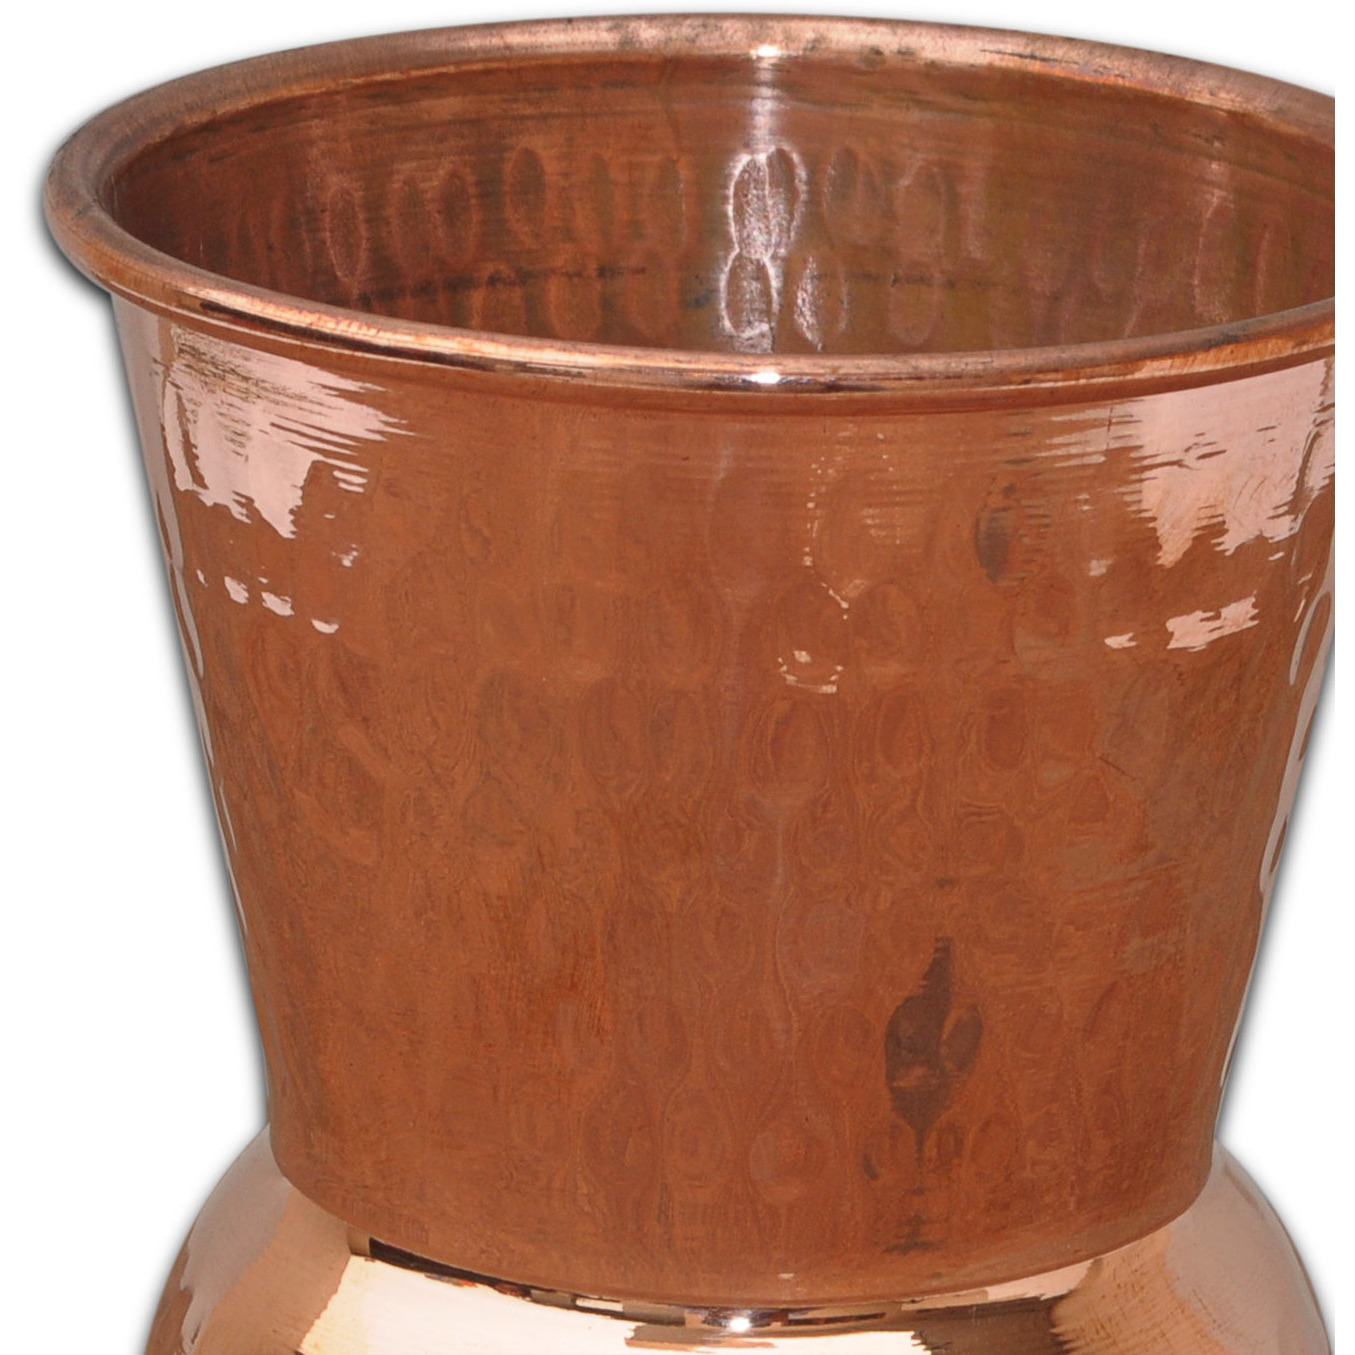 Set of 3 - Prisha India Craft B. Copper Muglai Matka Glass Hammered Style Drinkware Tumbler Handmade Copper Cups - Traveller's Copper Mug for Ayurveda Benefits